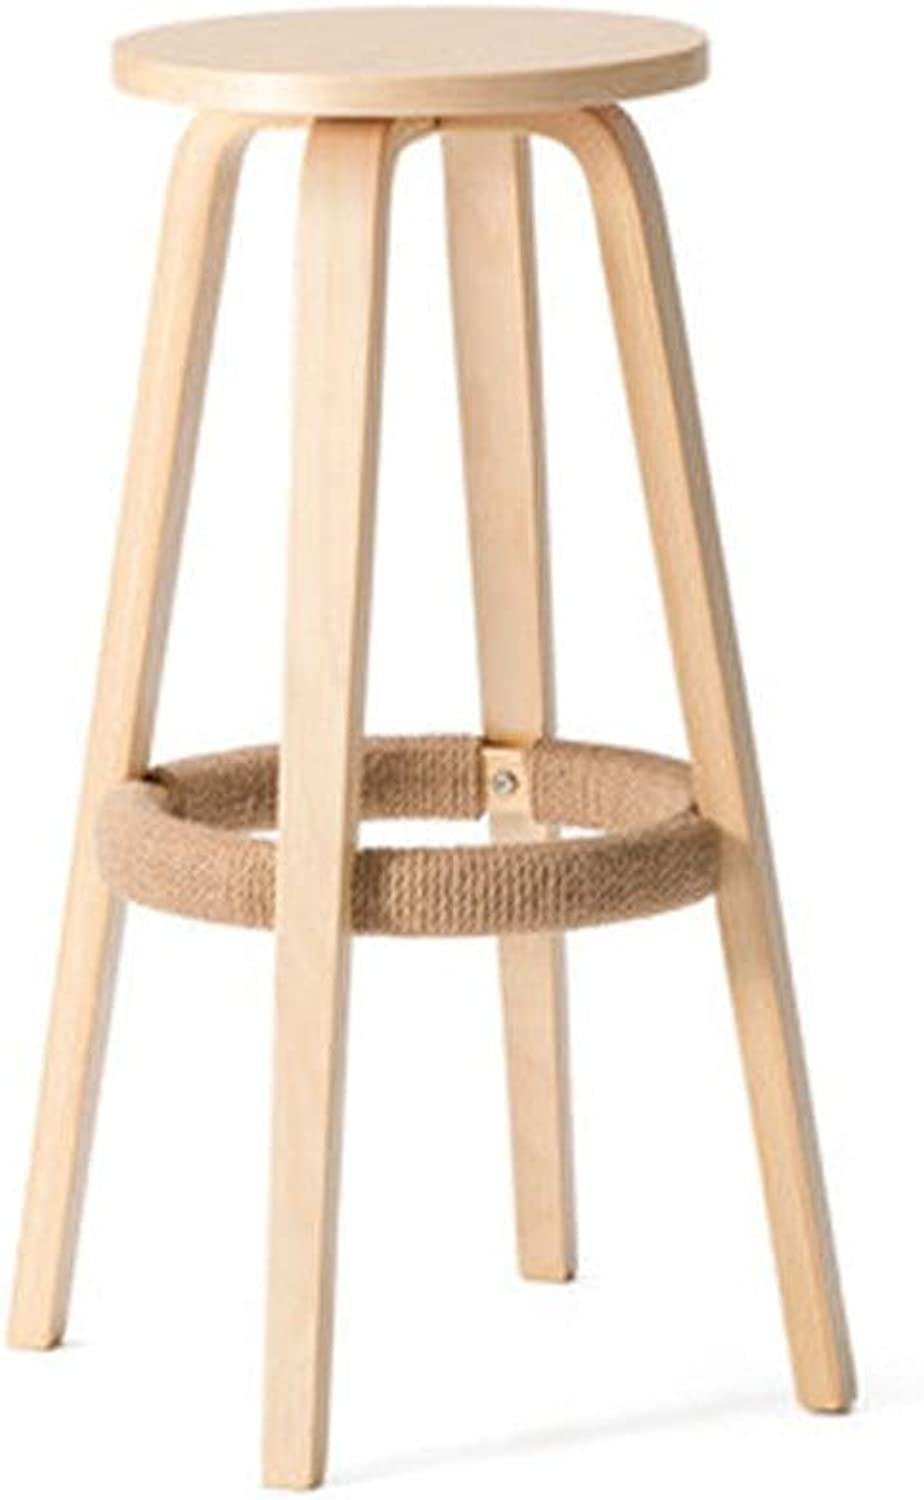 Bar Stool Fashion Simple Modern Solid Wood Round Bar Chair Bar Home Coffee Chair Table and Chair Without Backrest Restaurant High Bar Stool (color   C11, Size   As Shown)